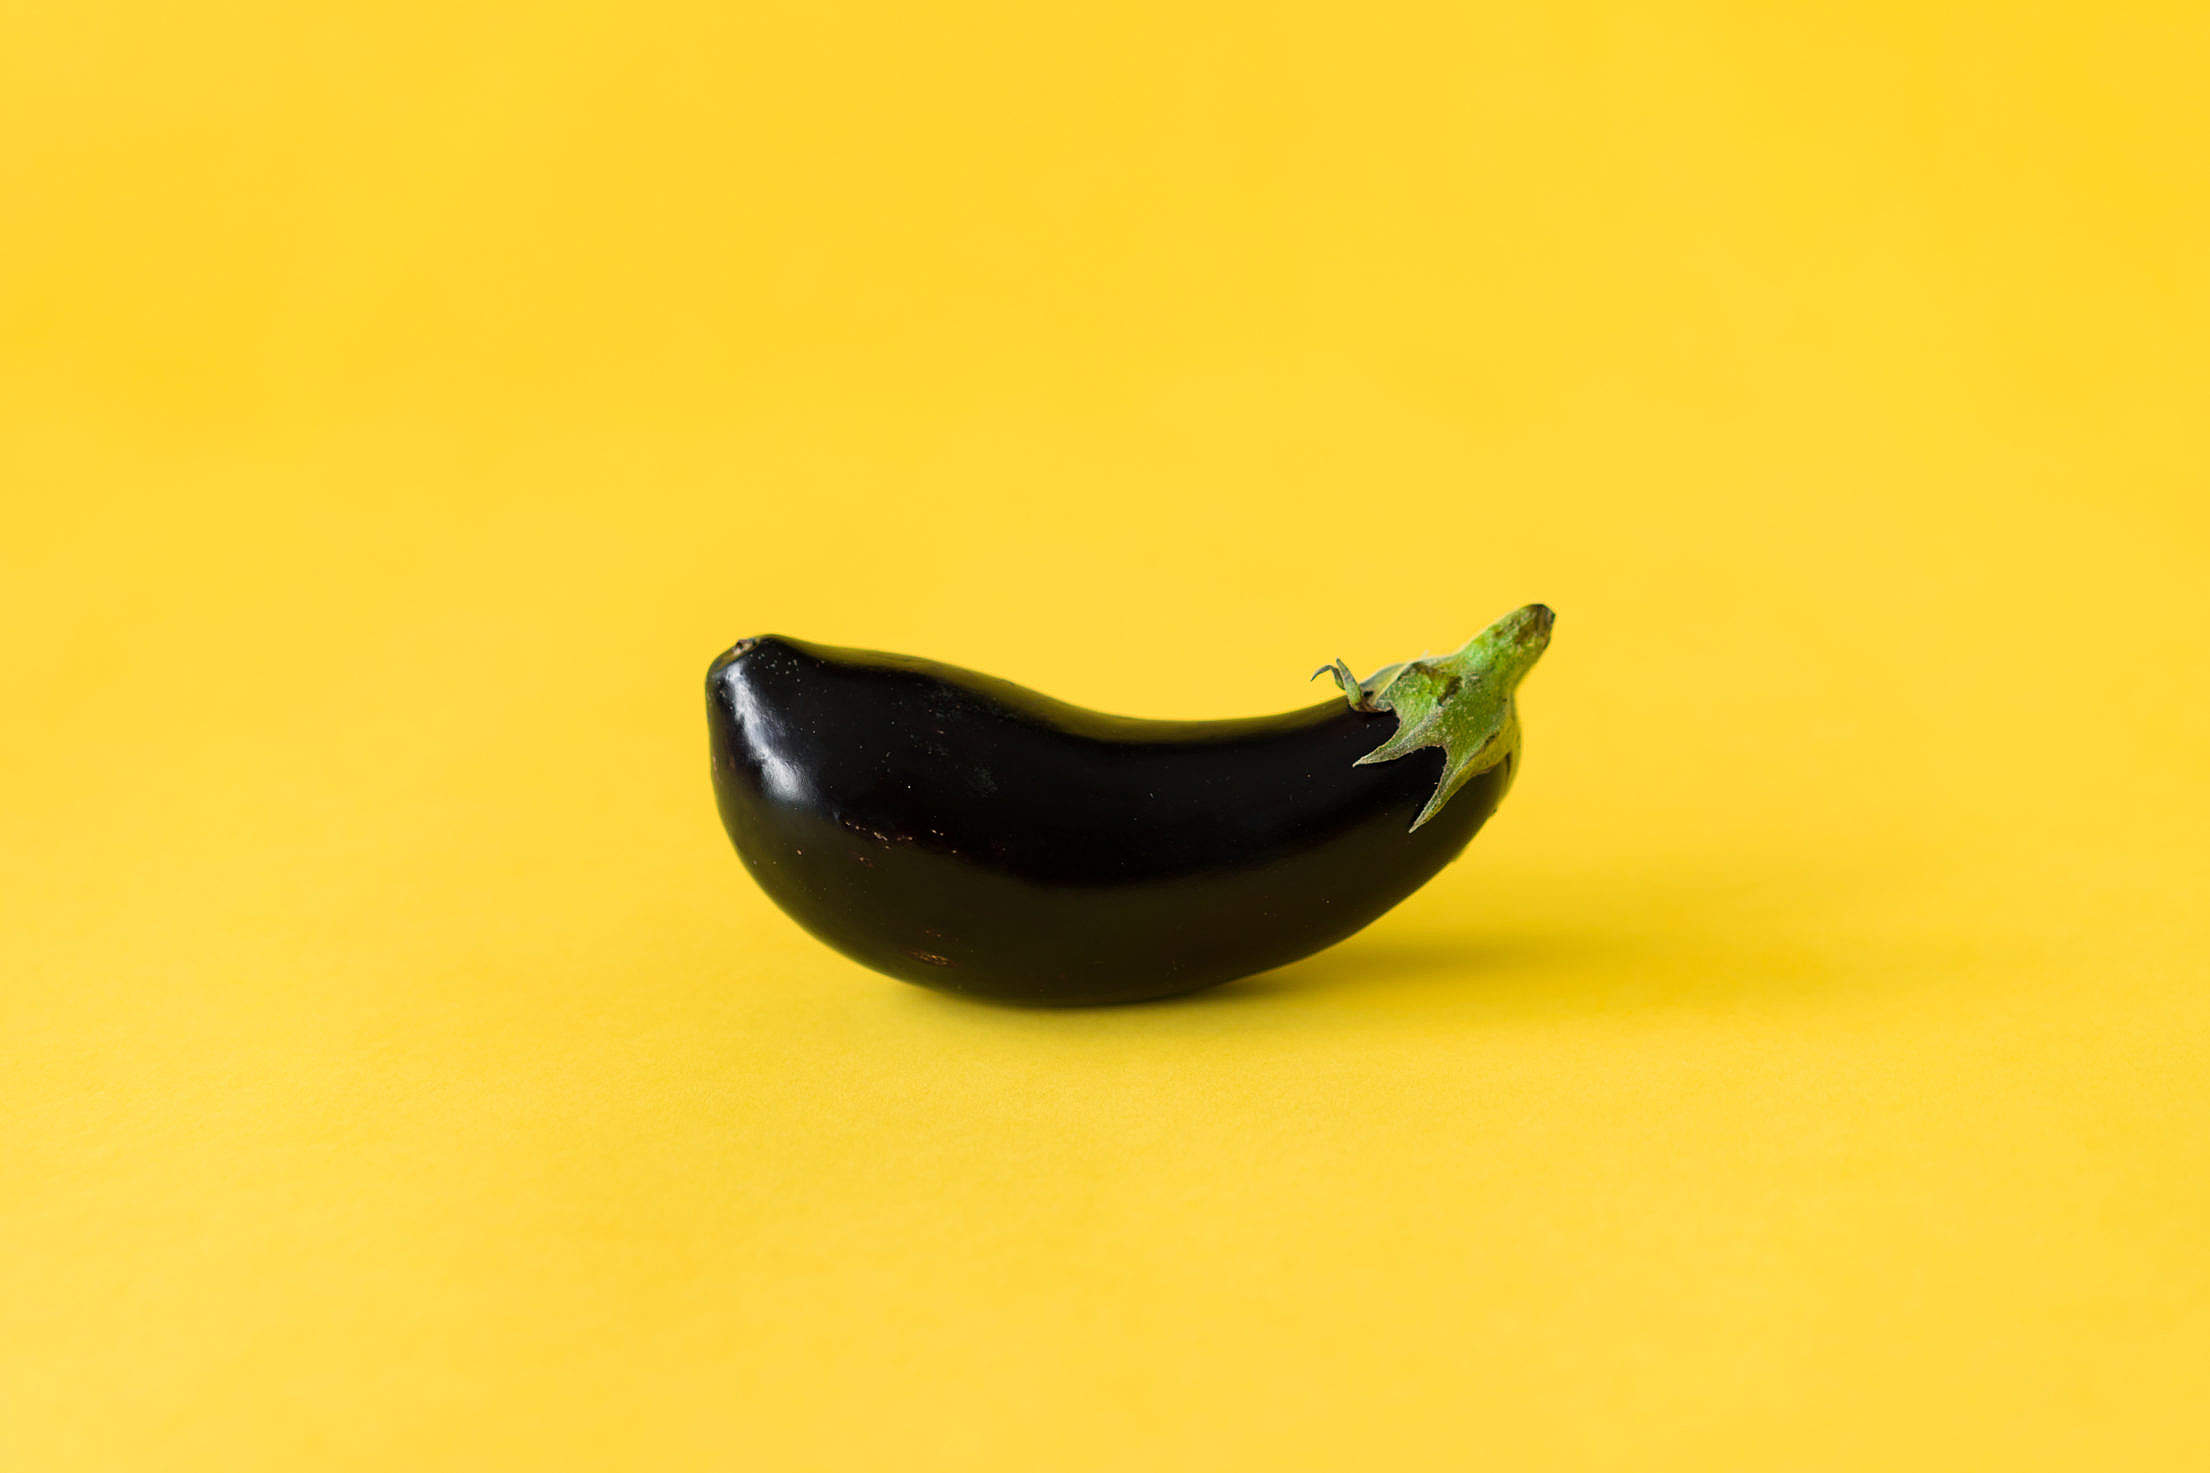 Download Eggplant Free Stock Photo